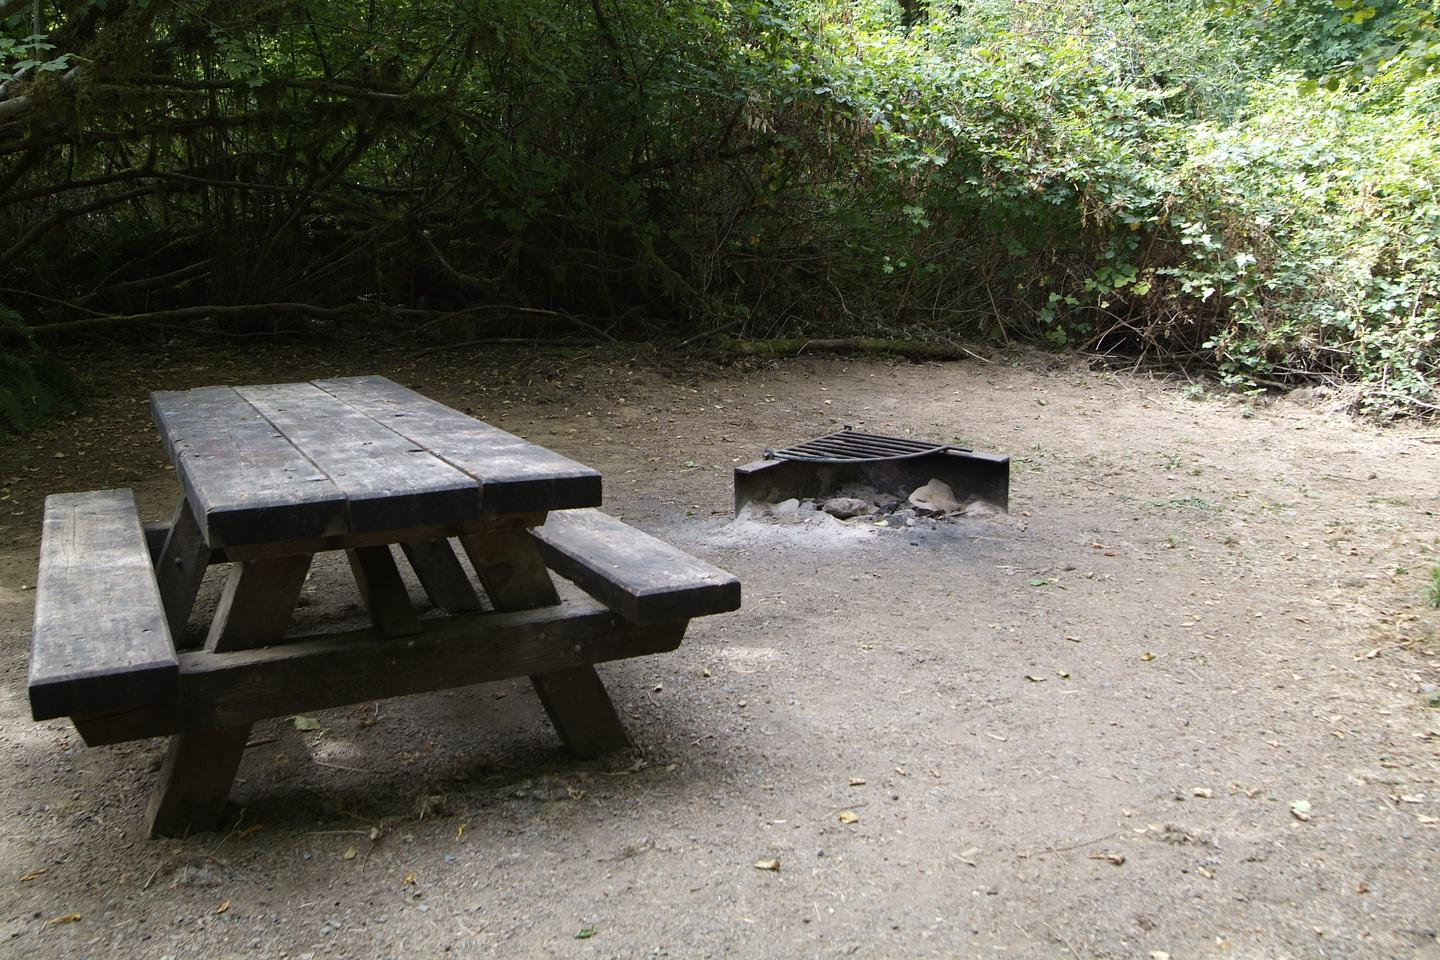 Table and fire ring for camp site 18. Camp site 18 table and fire ring.